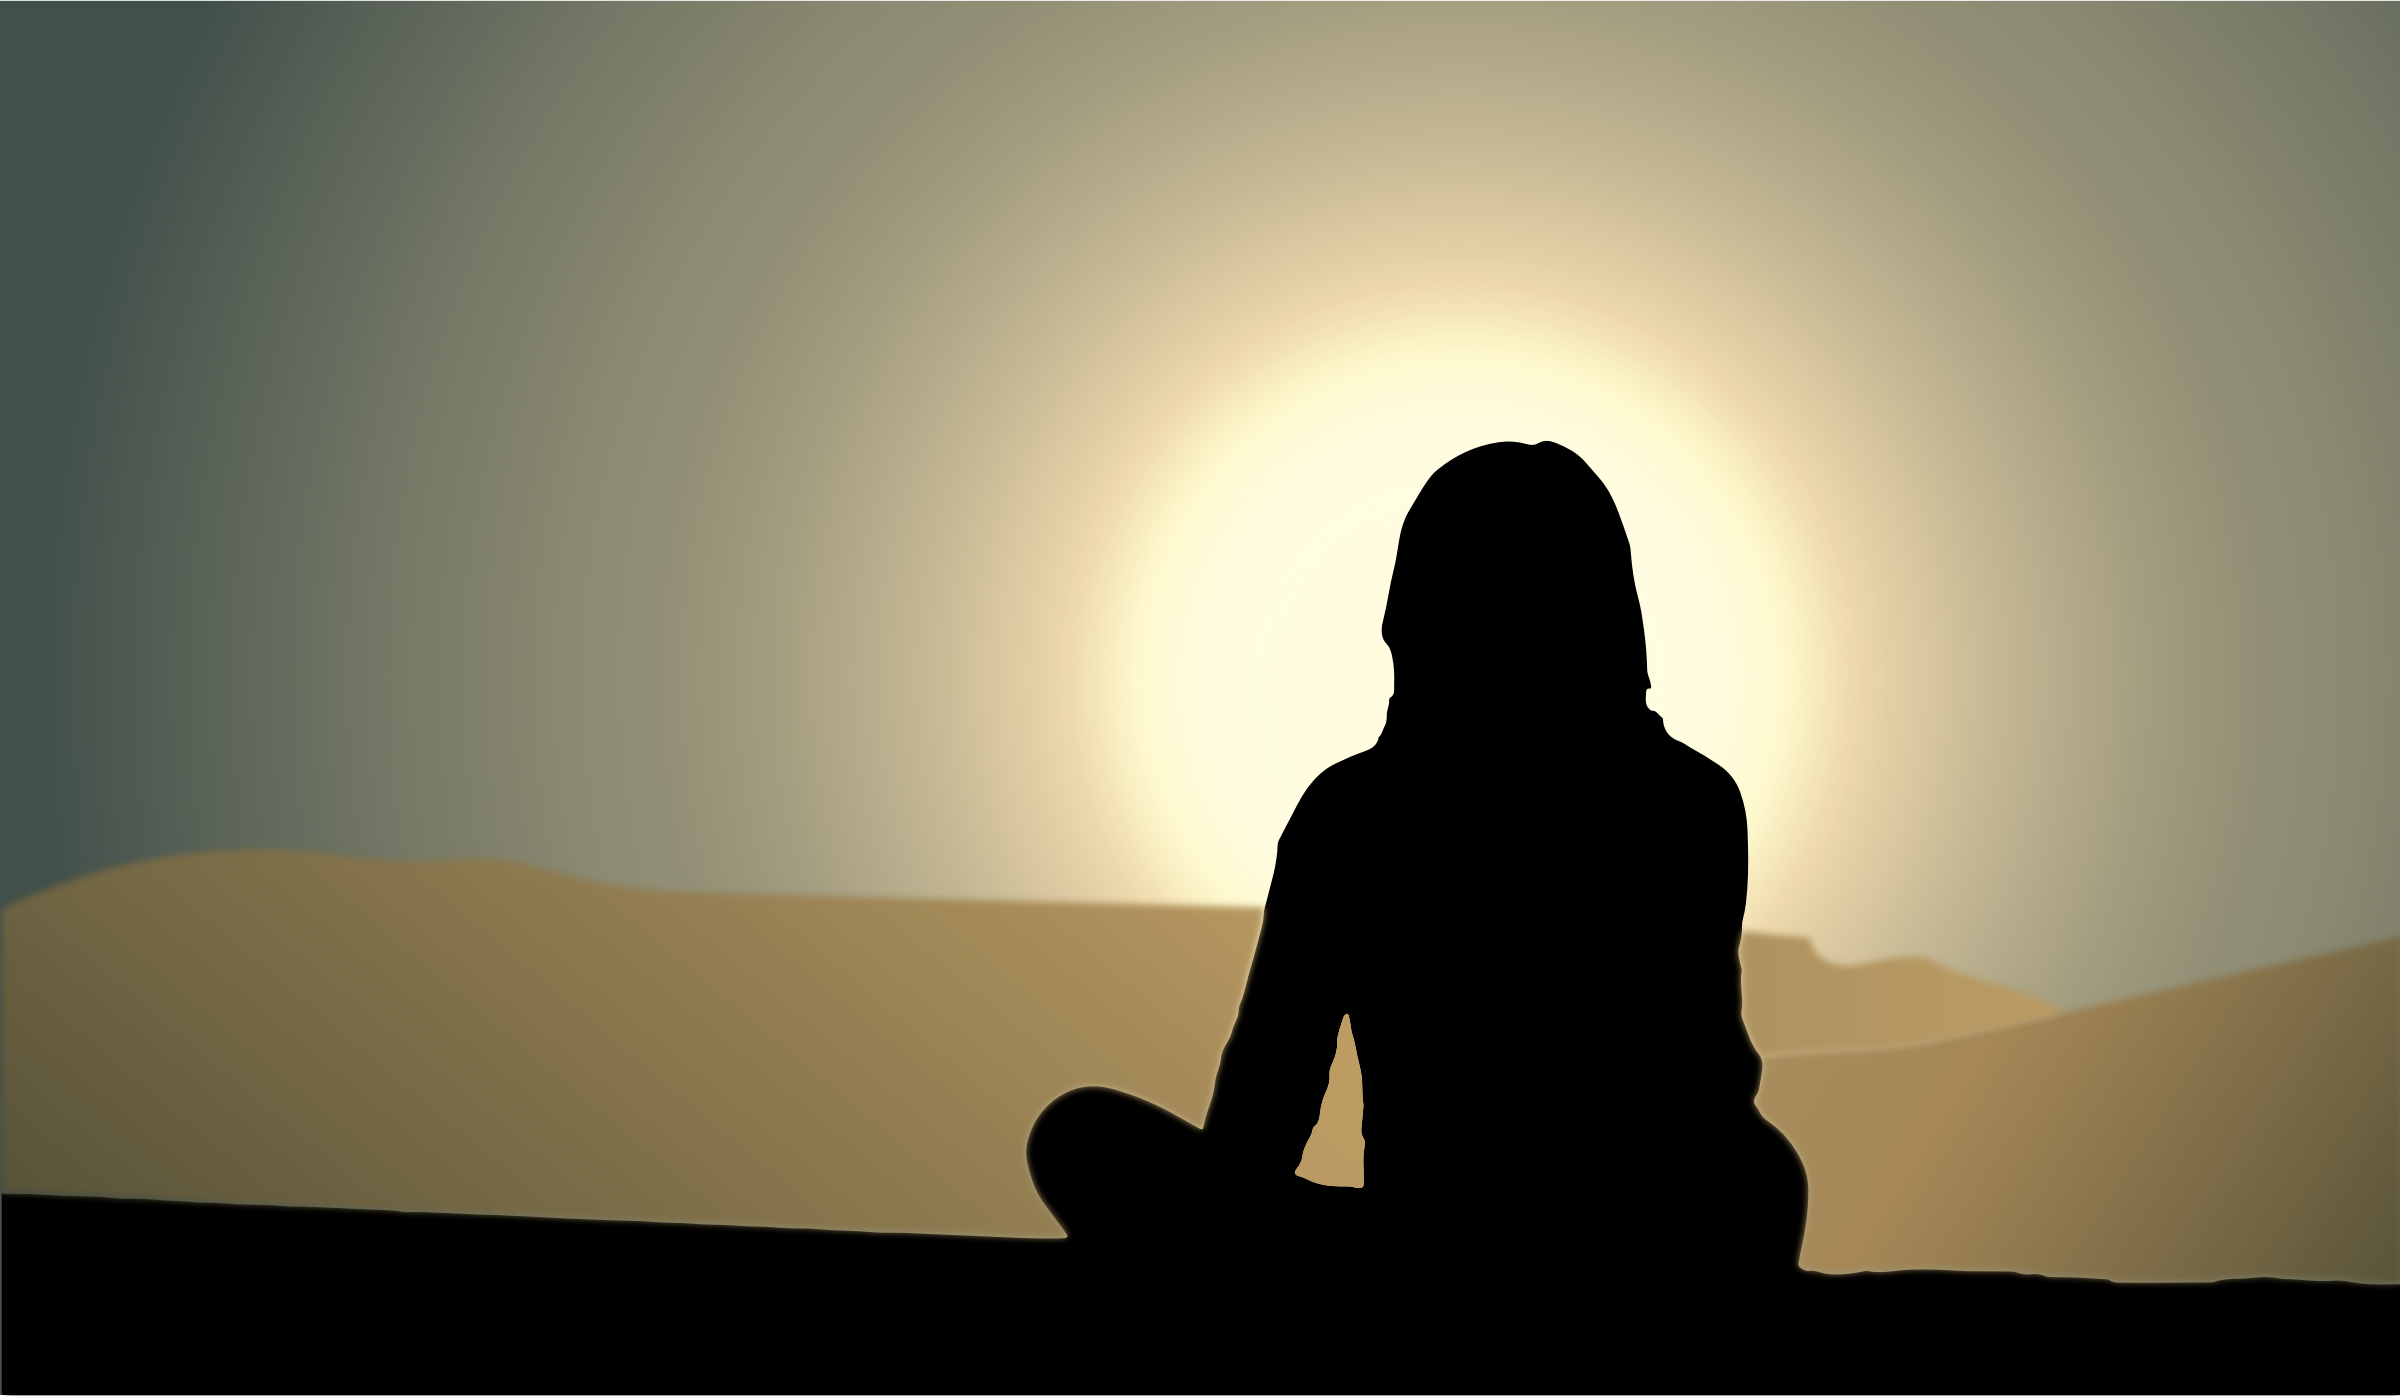 ... - Woman Sitting Sunset Silhouette People Sitting Silhouette Png White Drum Set Silhouette